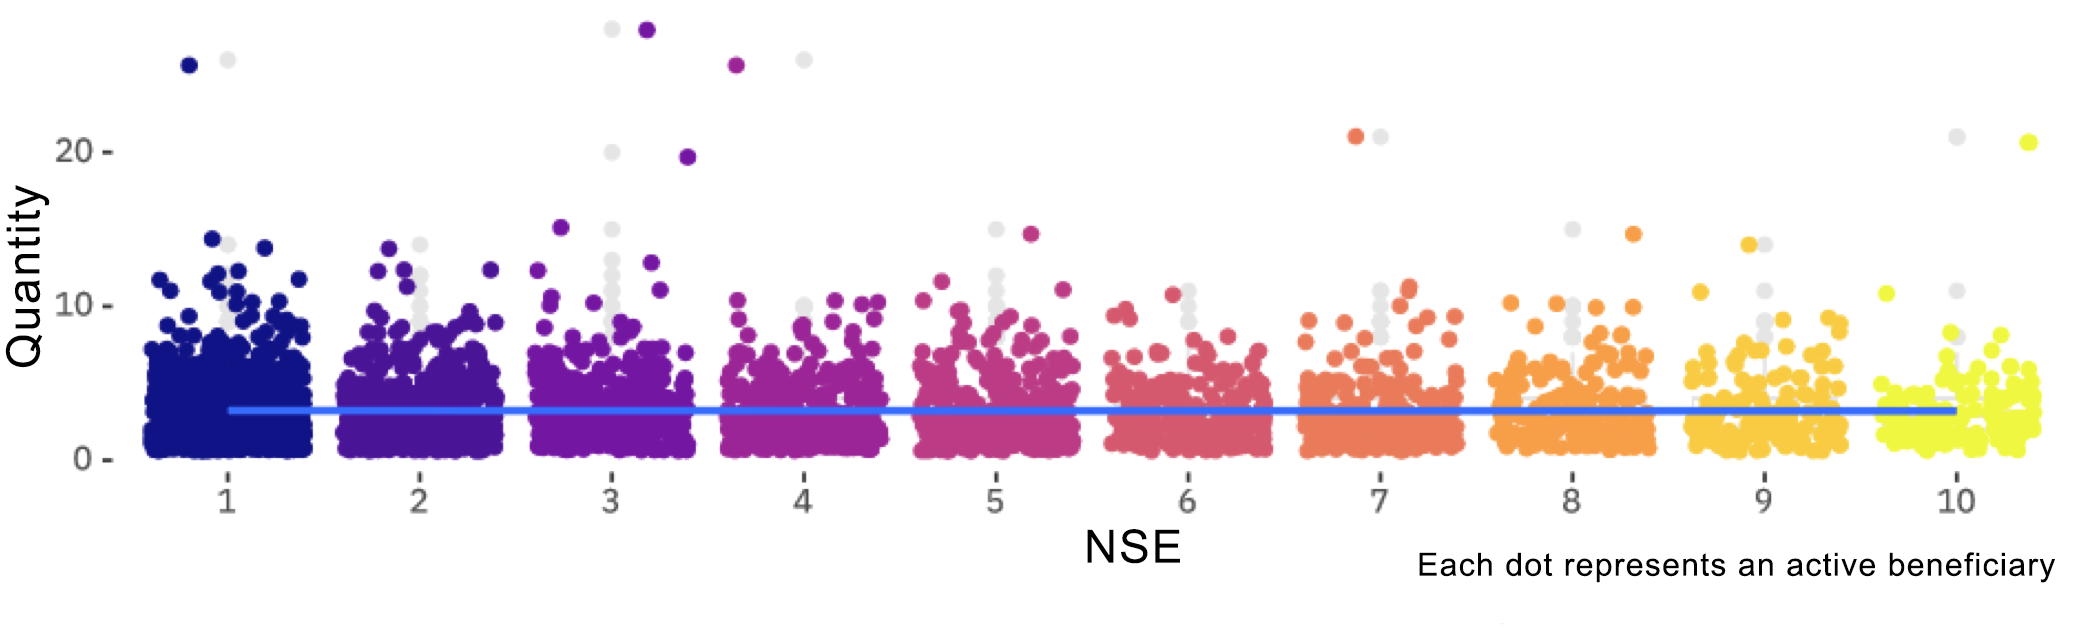 Fig. 3. Number of transactions per user by socioeconomic group (NSE). In the Y-axis the number of transactions and in the Y-axis the 10 groups, with yellow being the highest income.